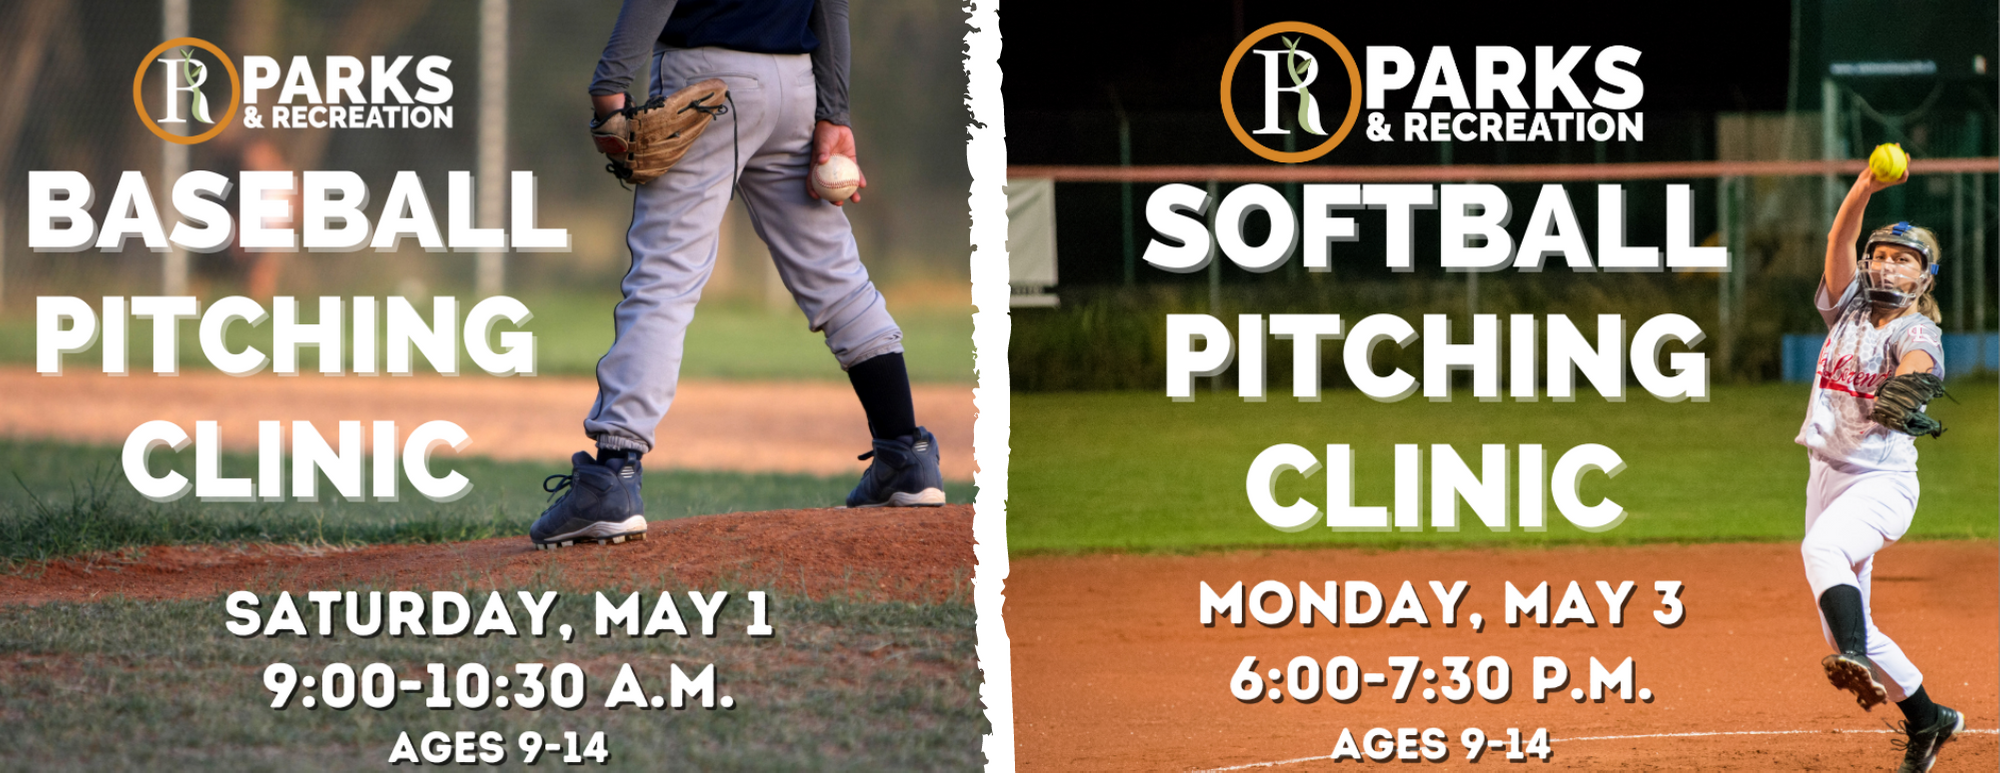 Pitching Clinics